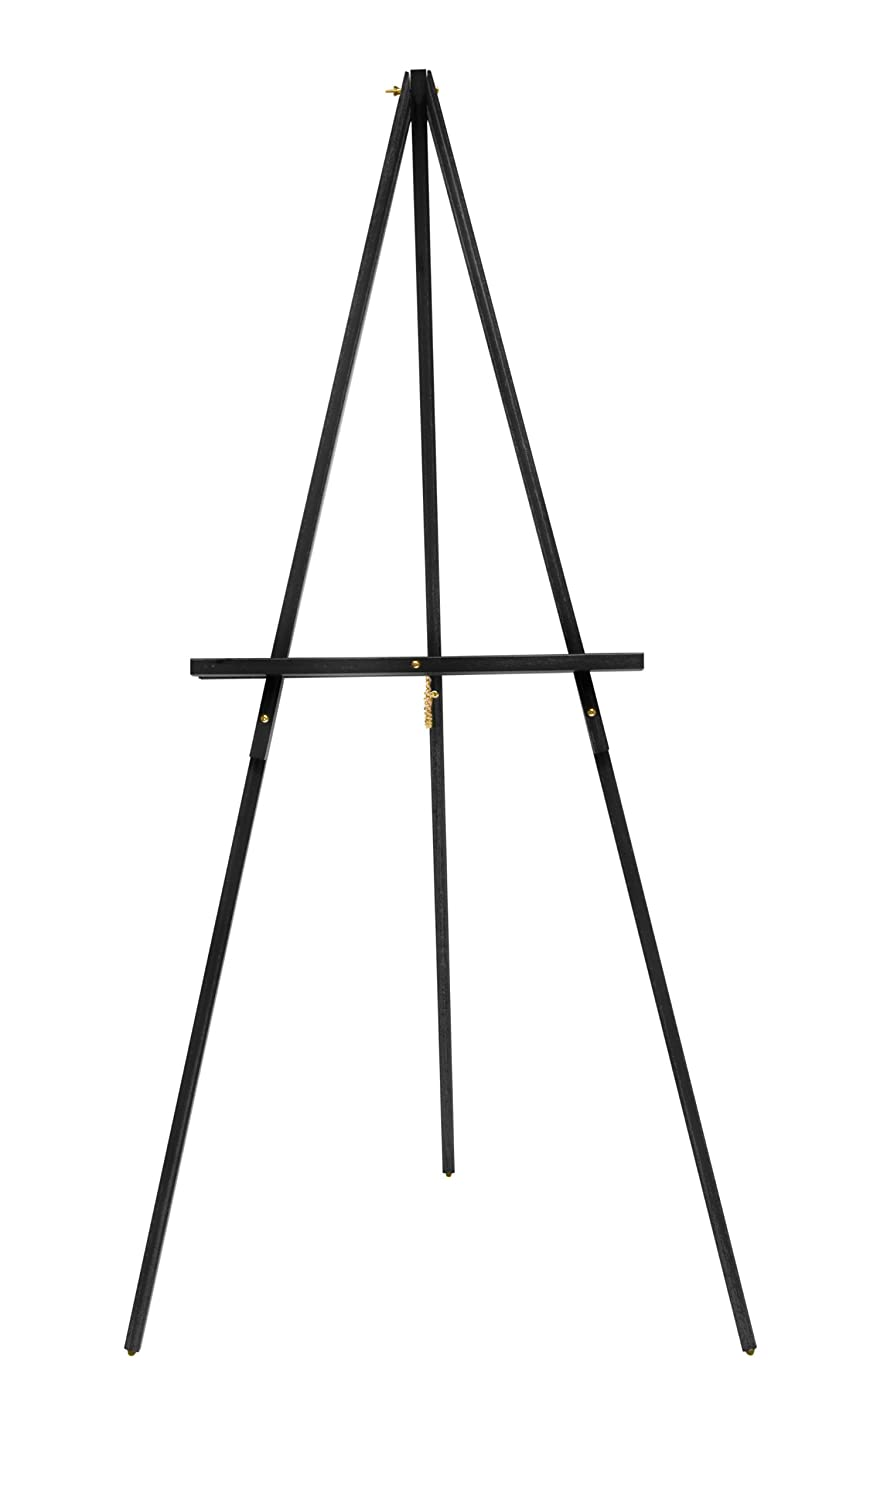 Studio Designs Studio Display Easel Black 13206 Inc.